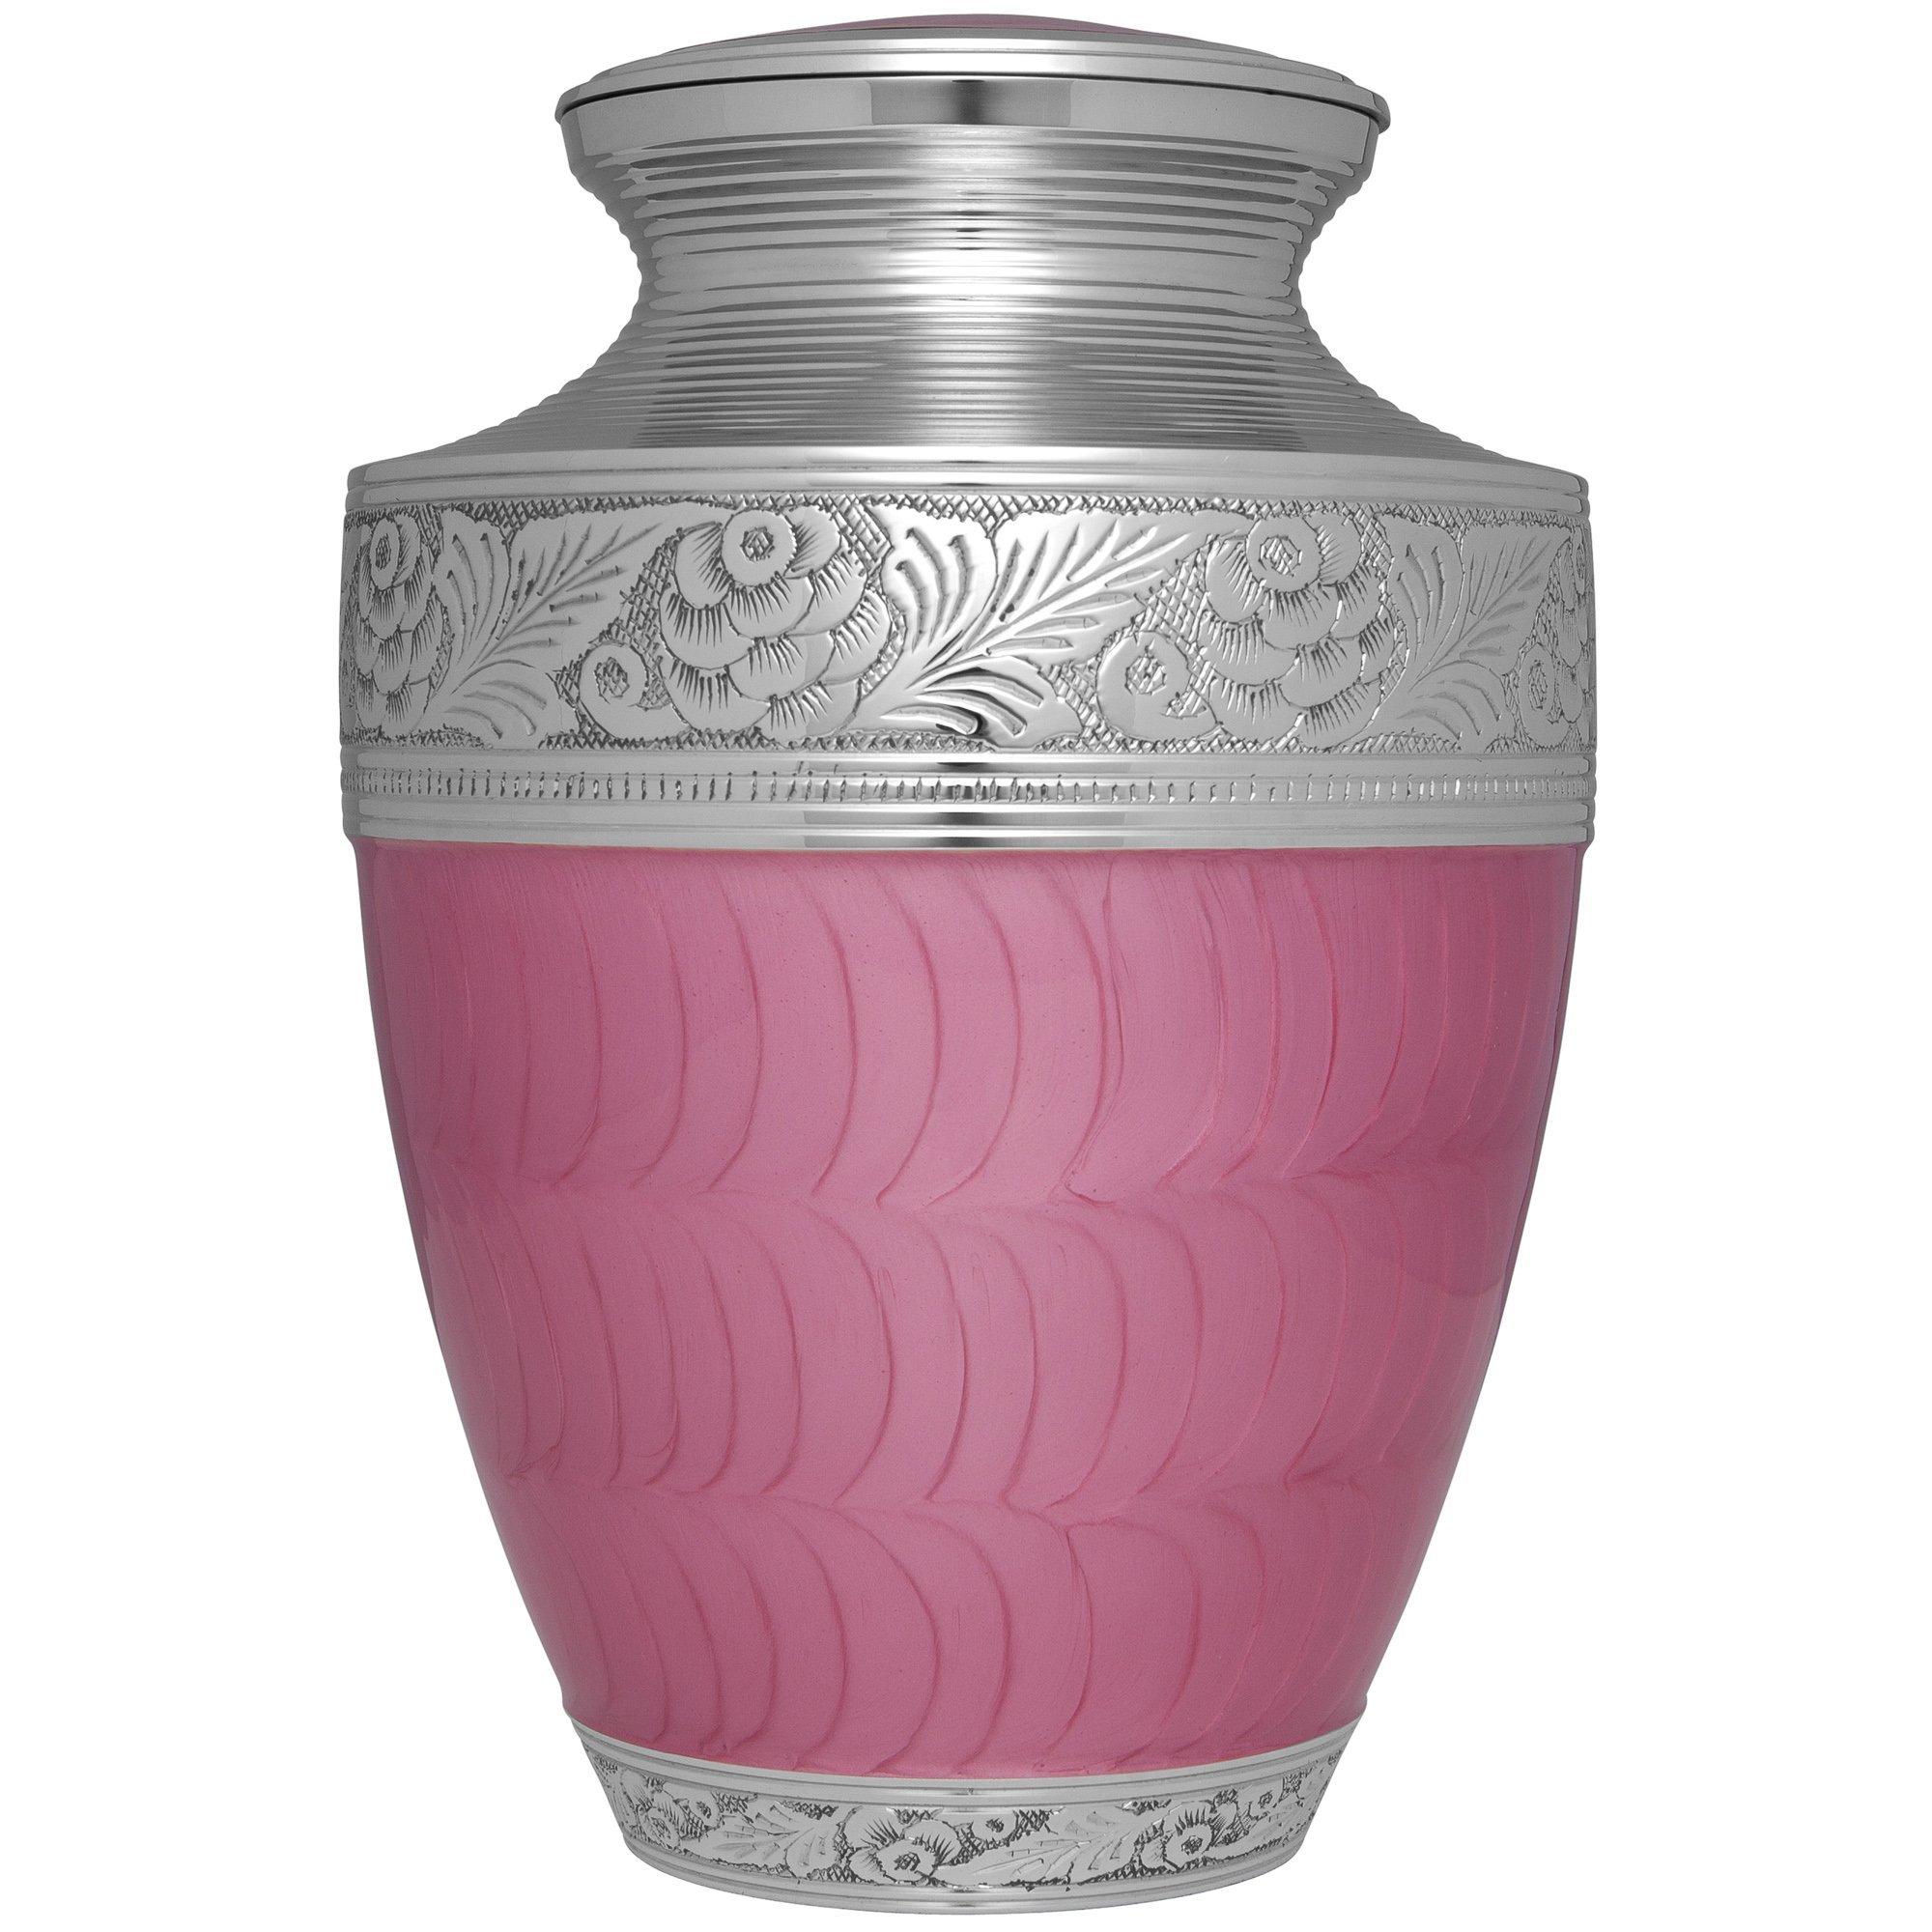 Pink Funeral Urn by Liliane Memorials - Cremation Urn for Human Ashes - Hand Made in Brass - Suitable for Cemetery Burial or Niche - Large Size fits remains of Adults up to 200 lbs- Verona Pink Model